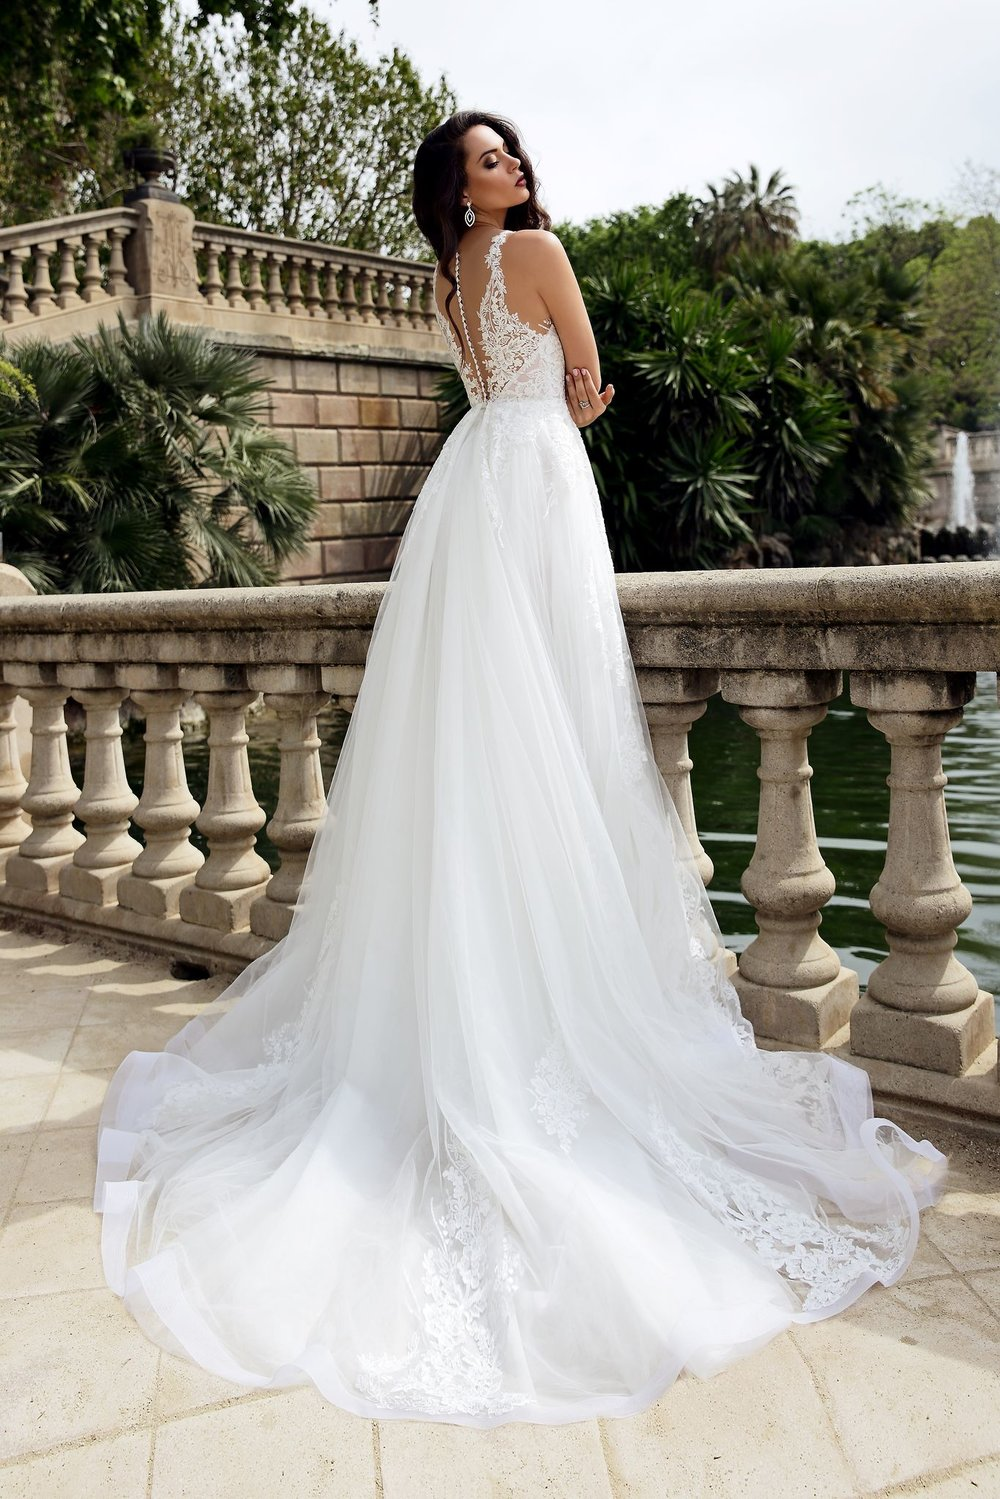 MARIANA wedding Dress by TINA VALERDI